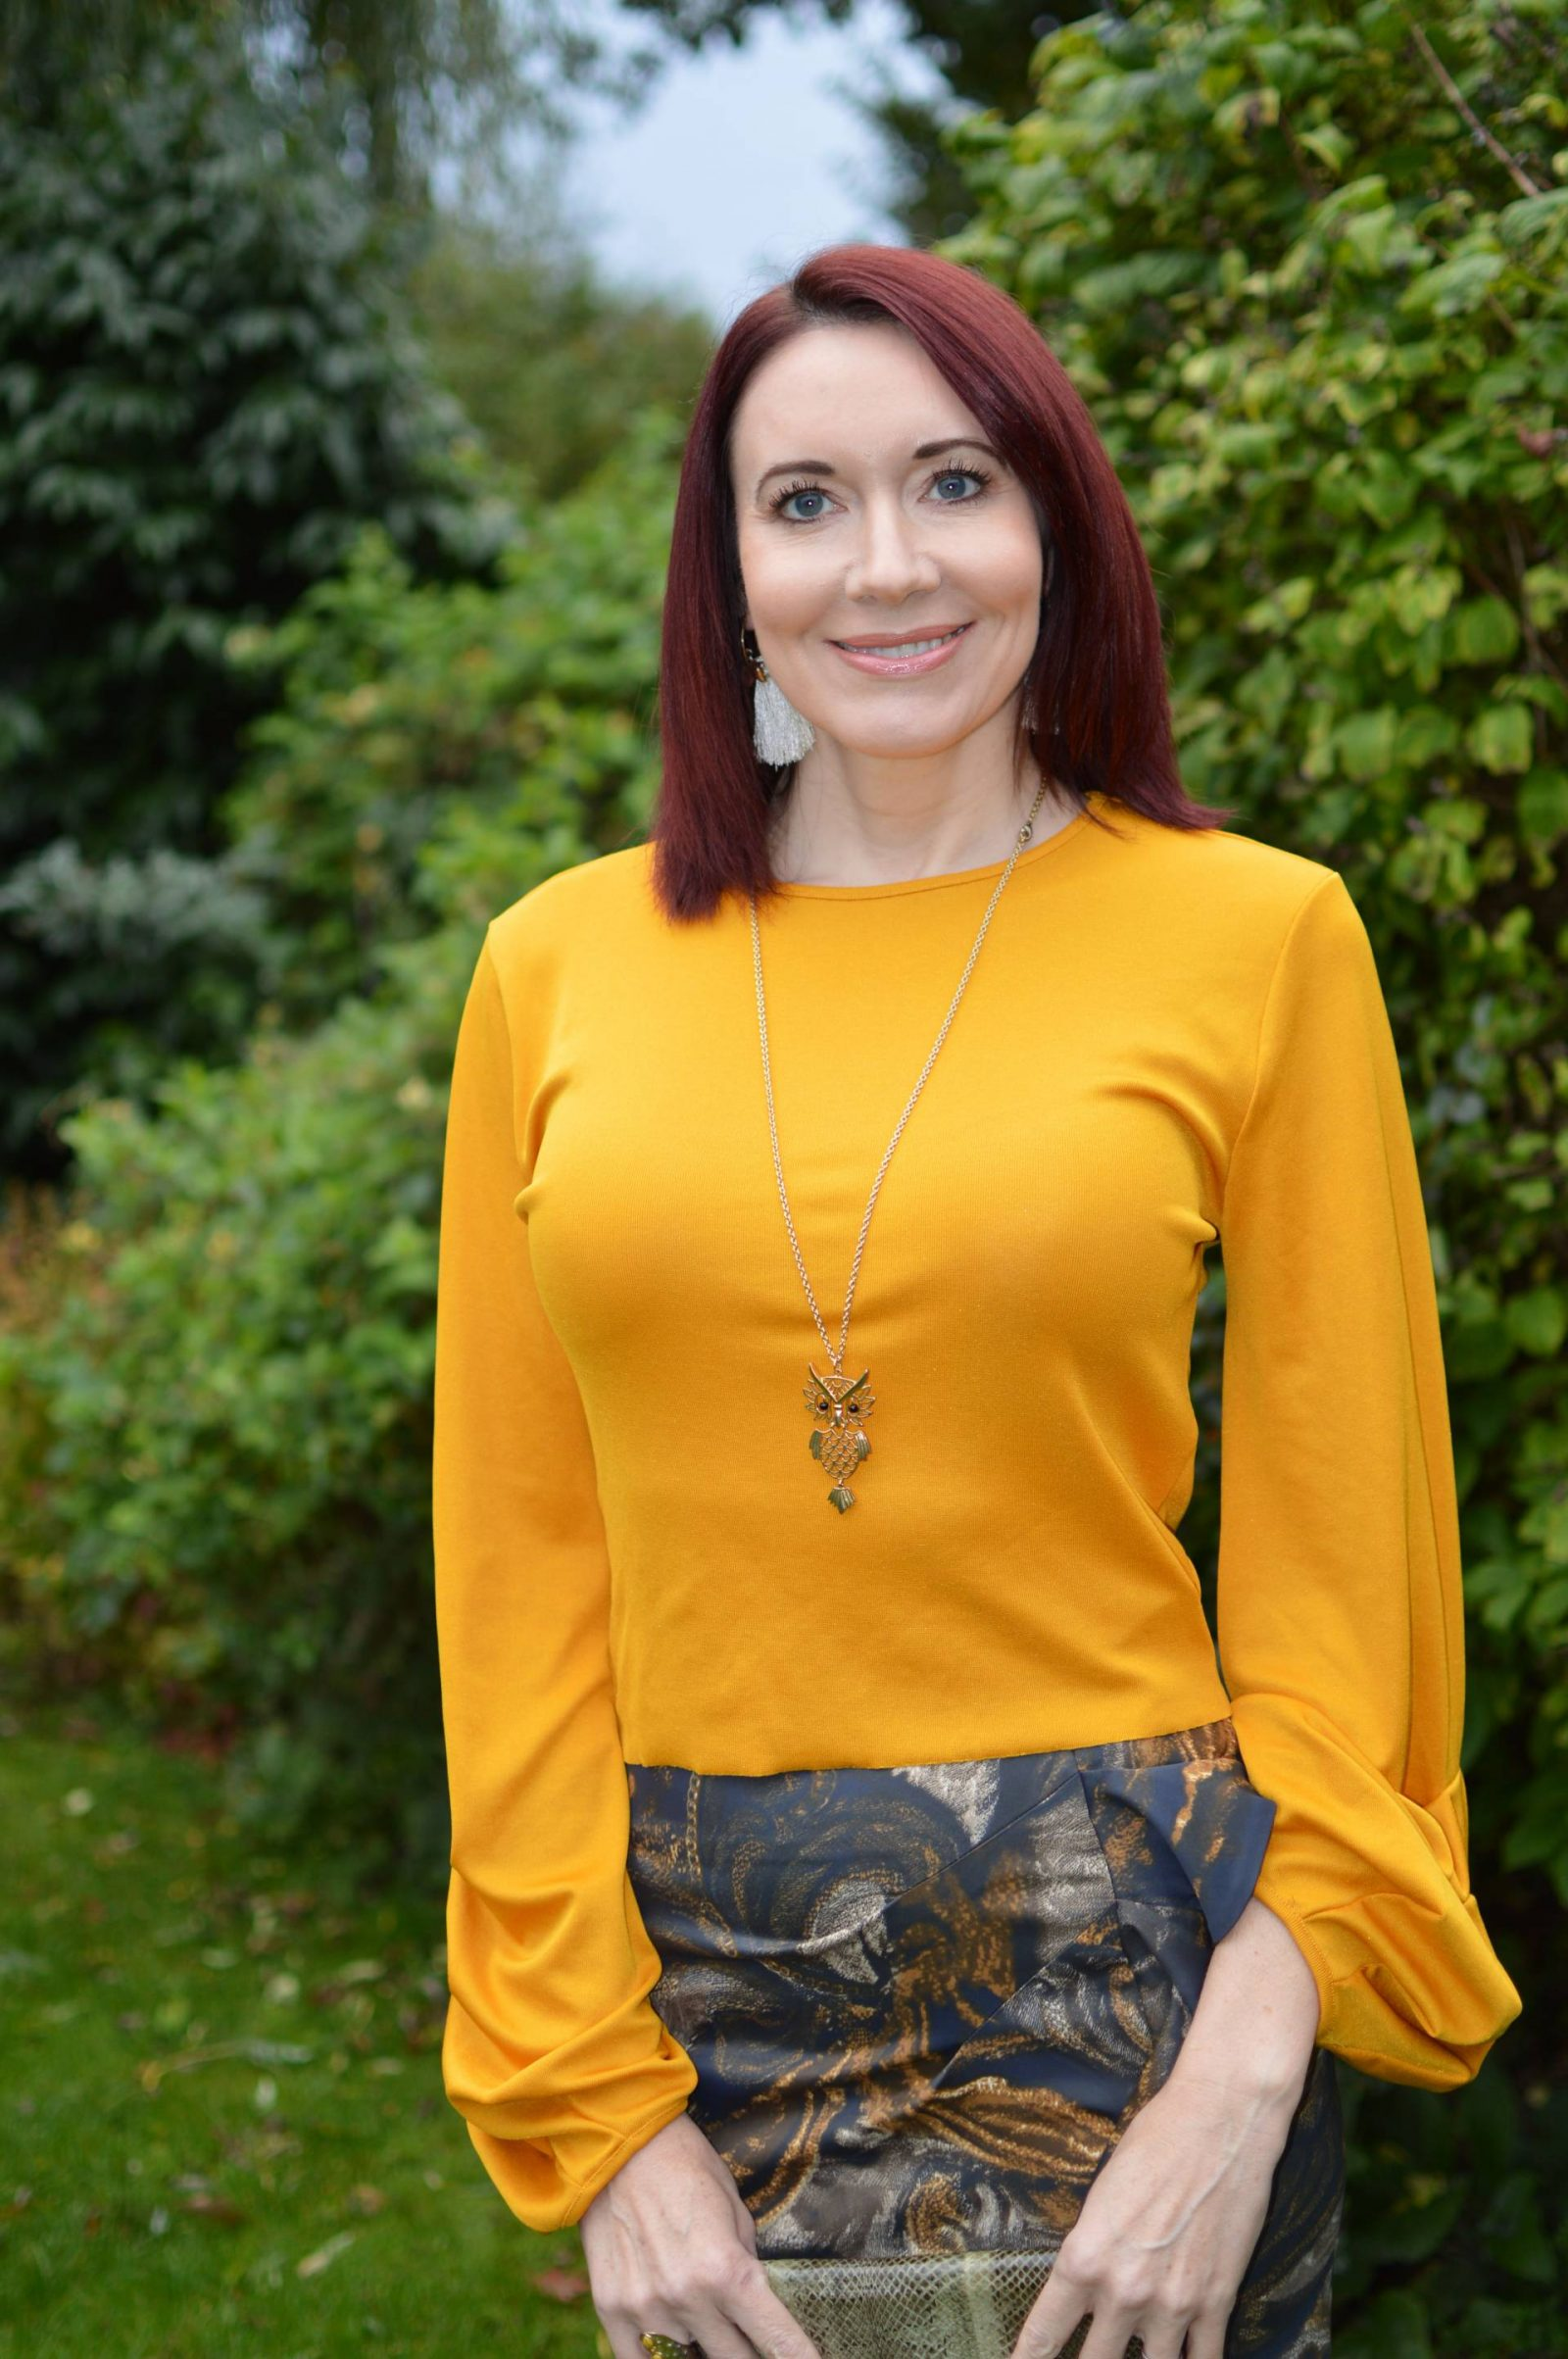 Karen Millen Frill skirt and Zara mustard top, Angel Jackson fringed bag